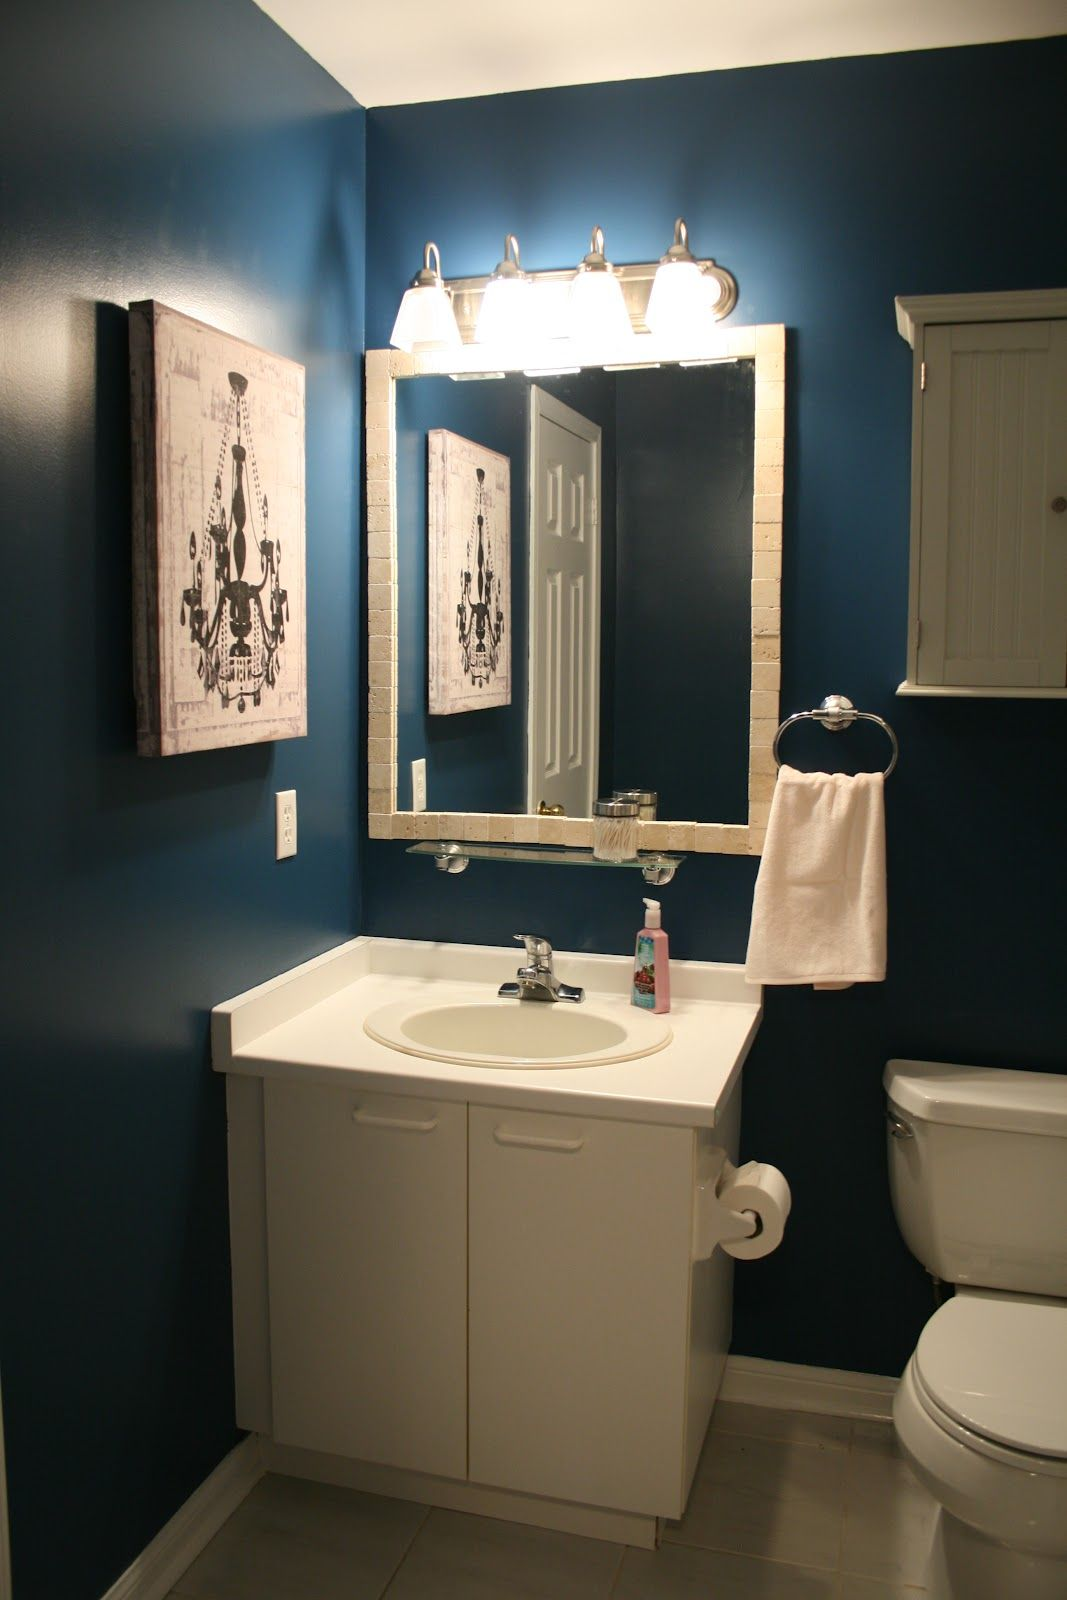 Not A Fan Of The Dark Walls But Love Mirror With Small Shelf Under It Could Be Cute For My Guest Bathroom